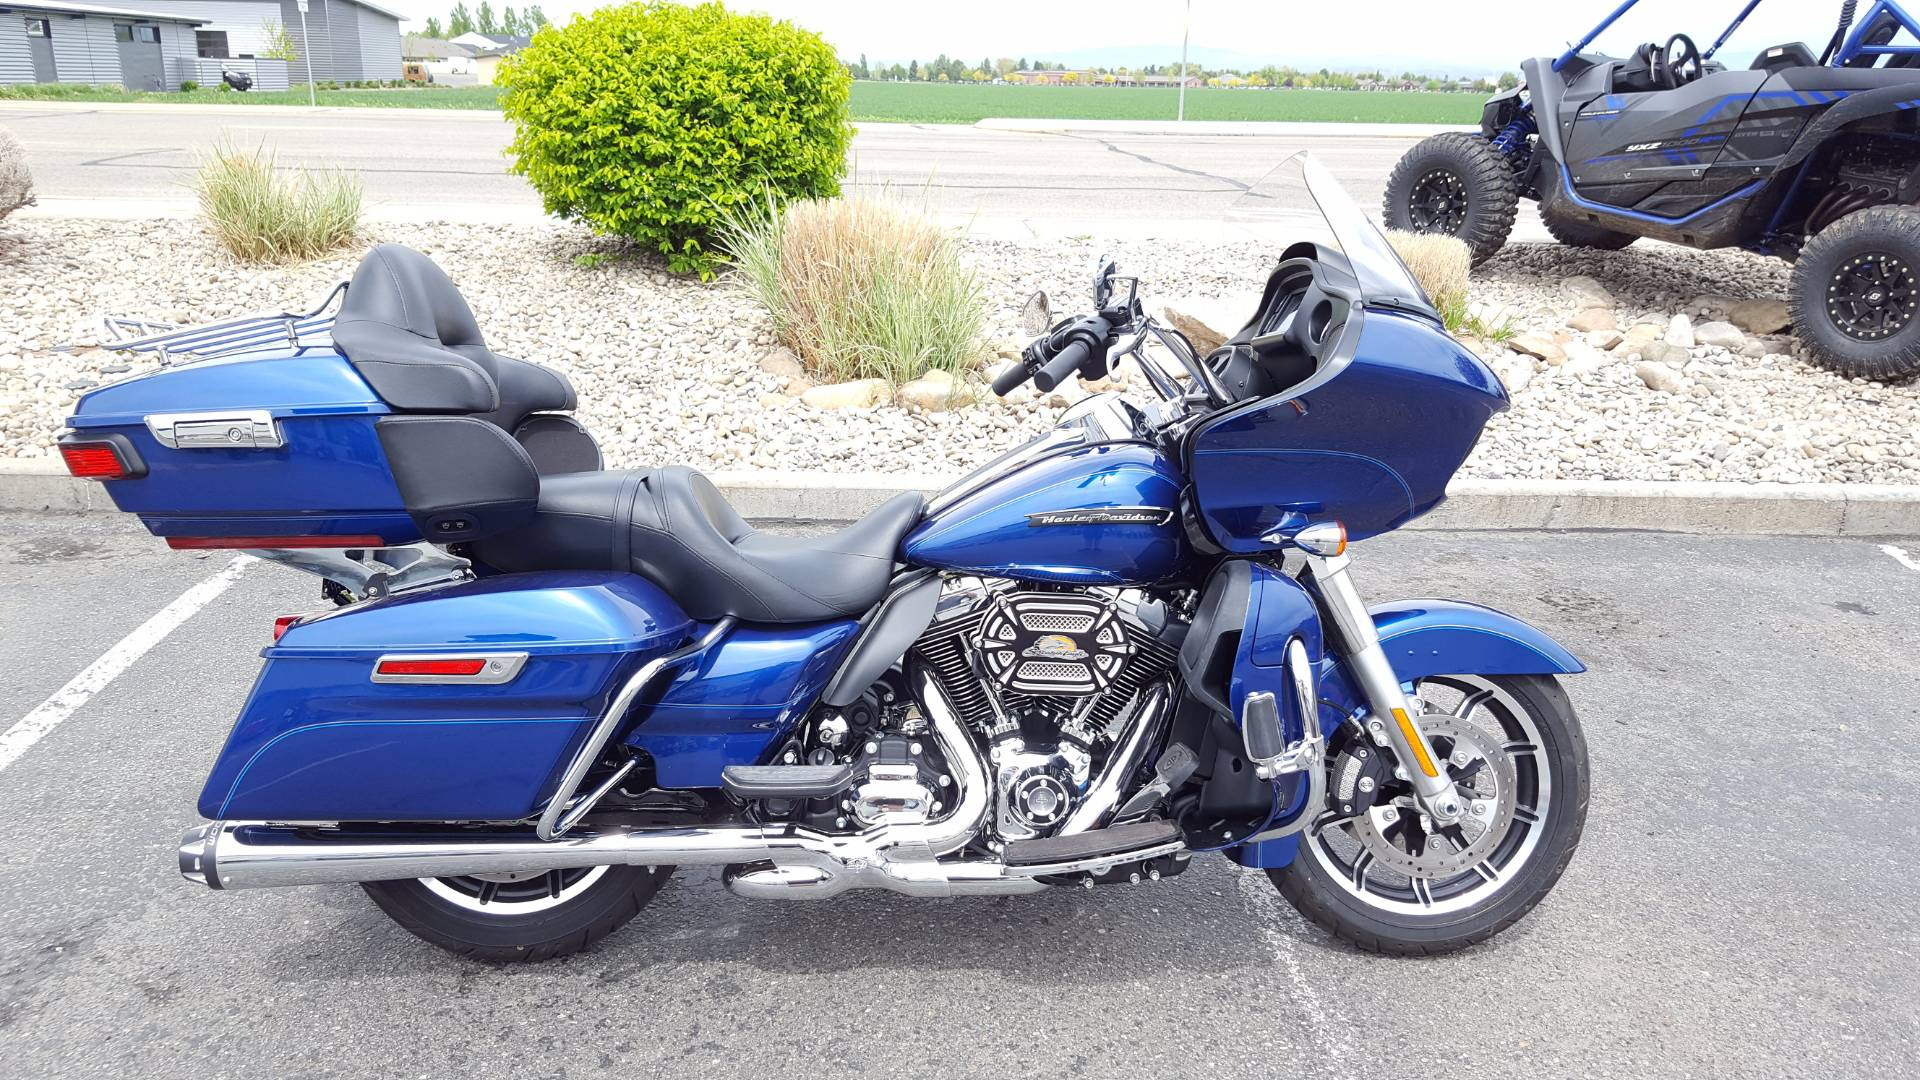 2016 Harley-Davidson Road Glide Ultra for sale 10038